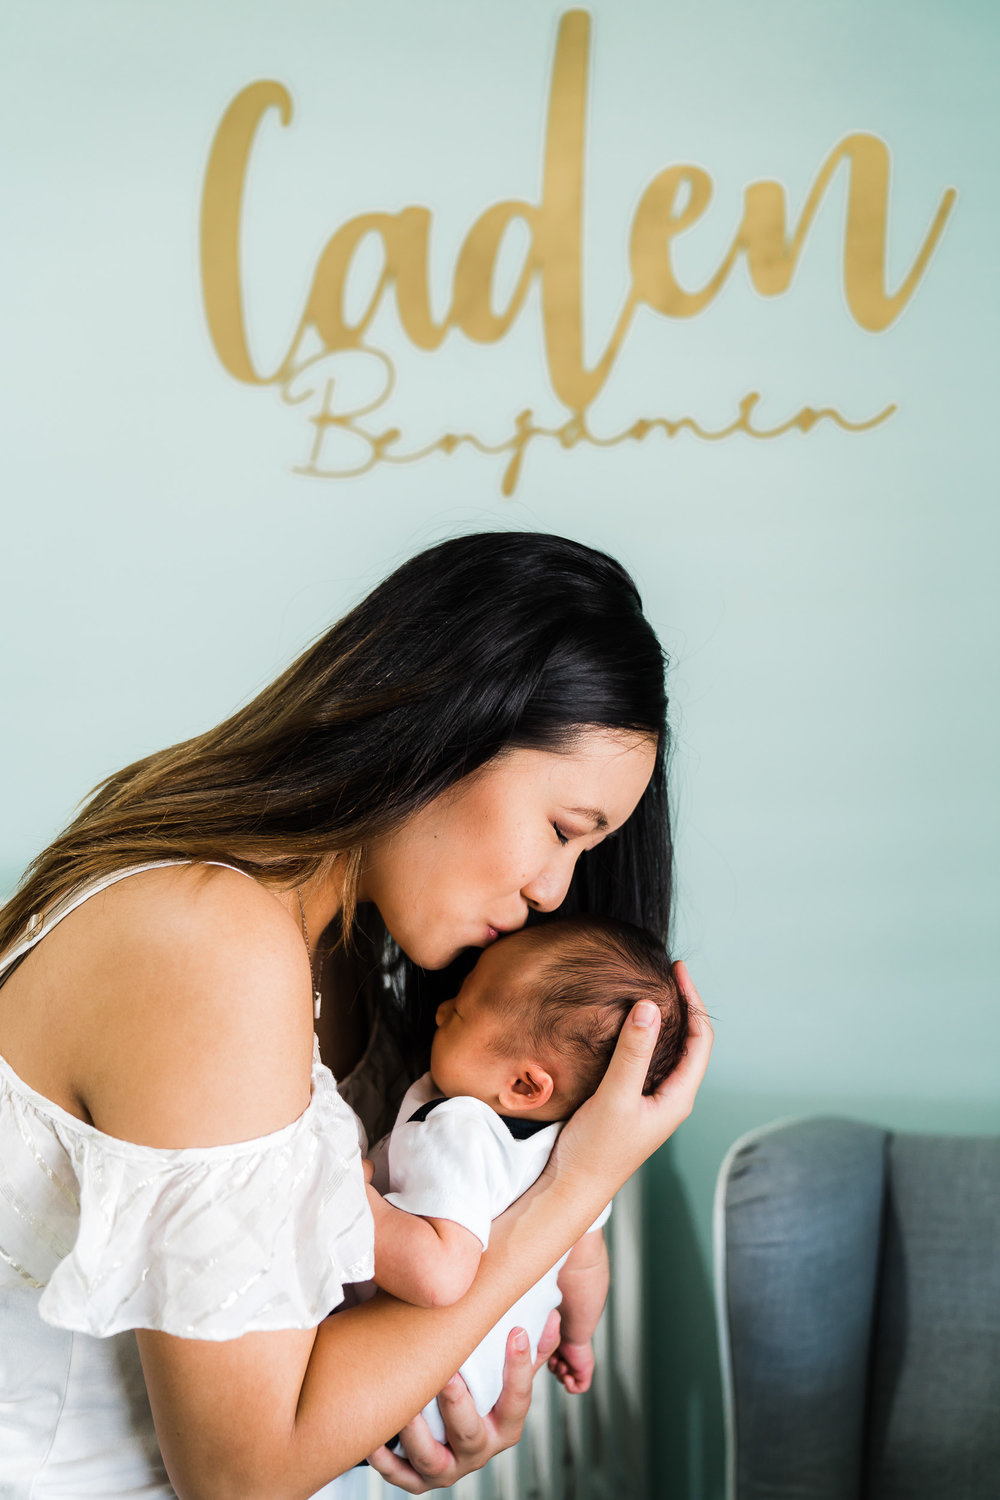 Bryan-Miraflor-Photography-Caden-Josie-Chris-Newborn-Photo-Session-20180708-058.jpg